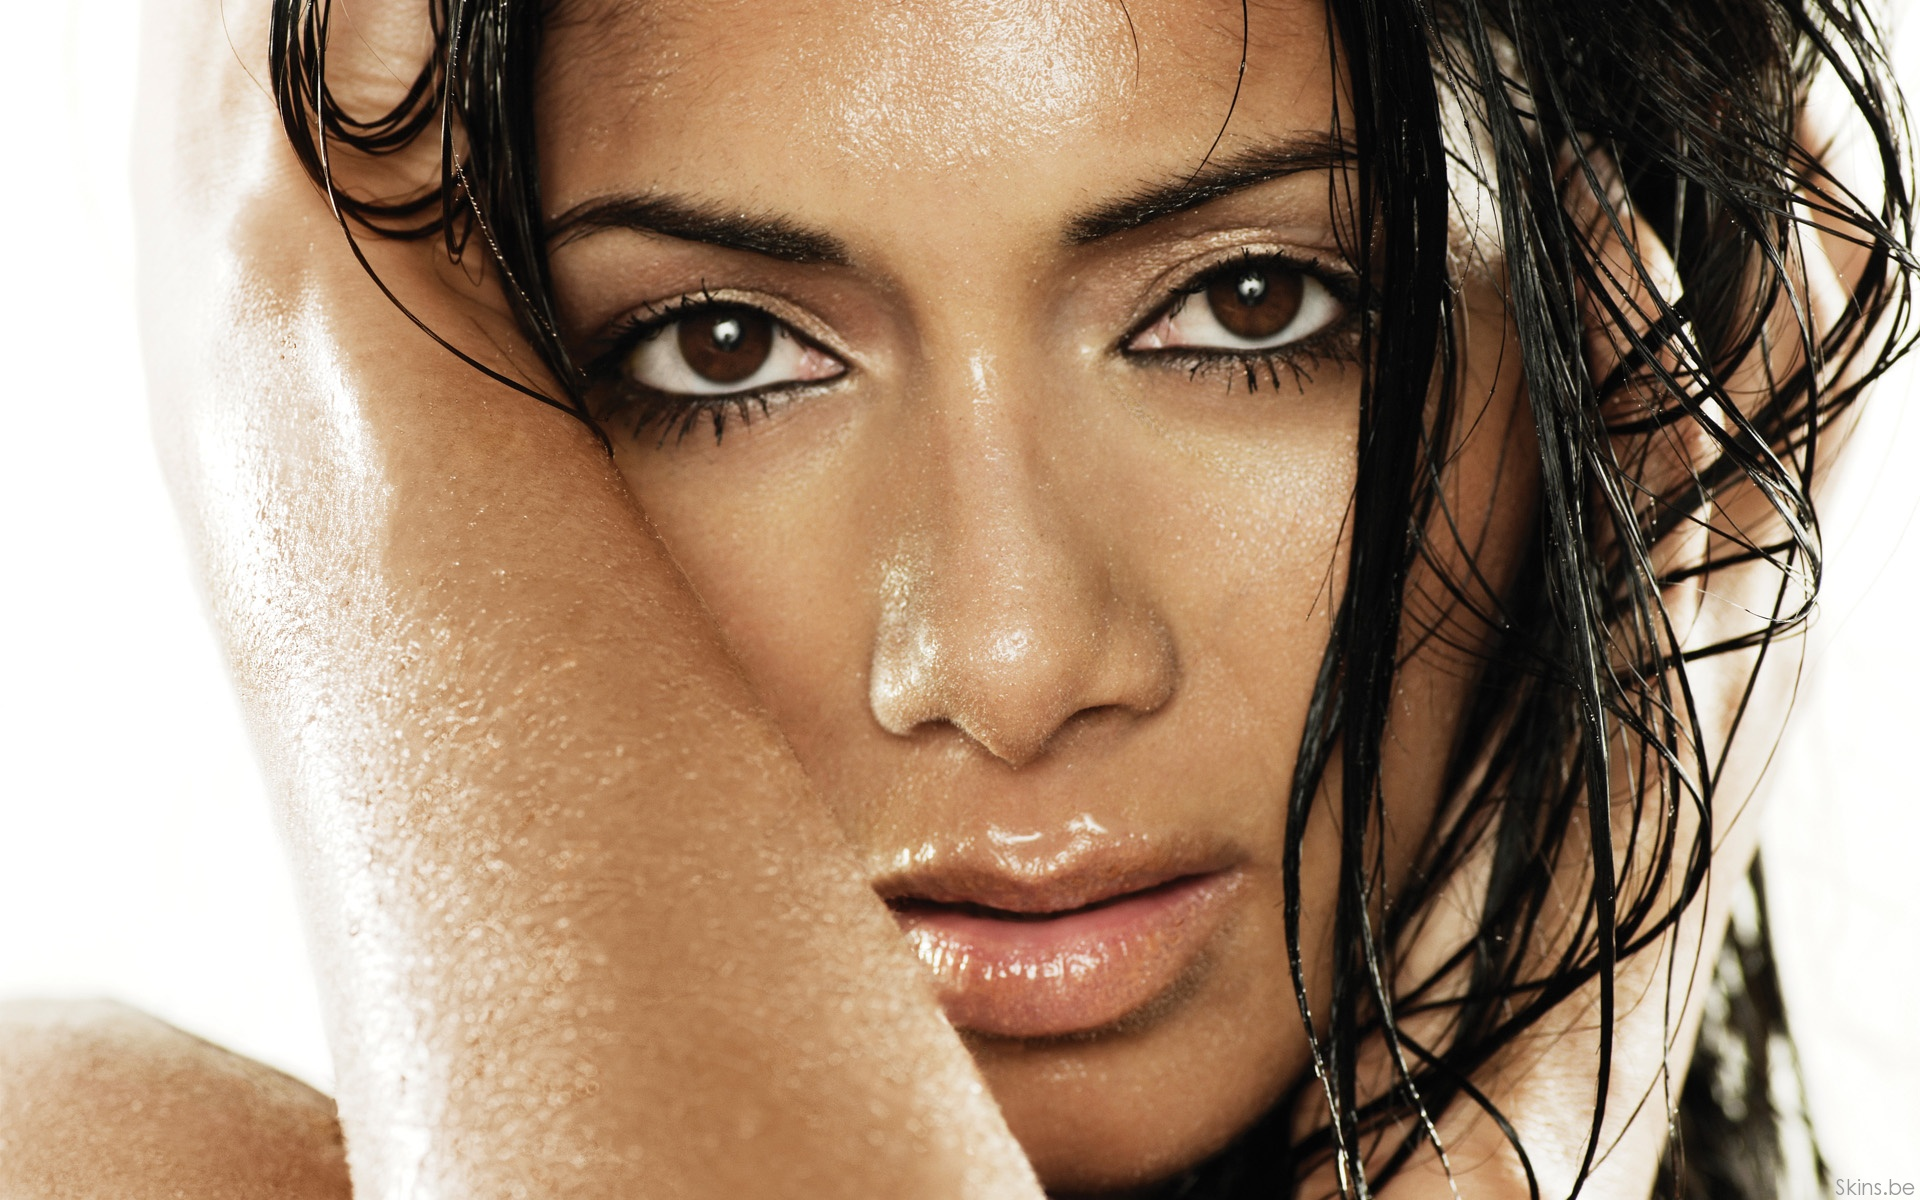 Try opening wallpapers.skins.be/nicole-scherzinger/nicole-scherzinger-